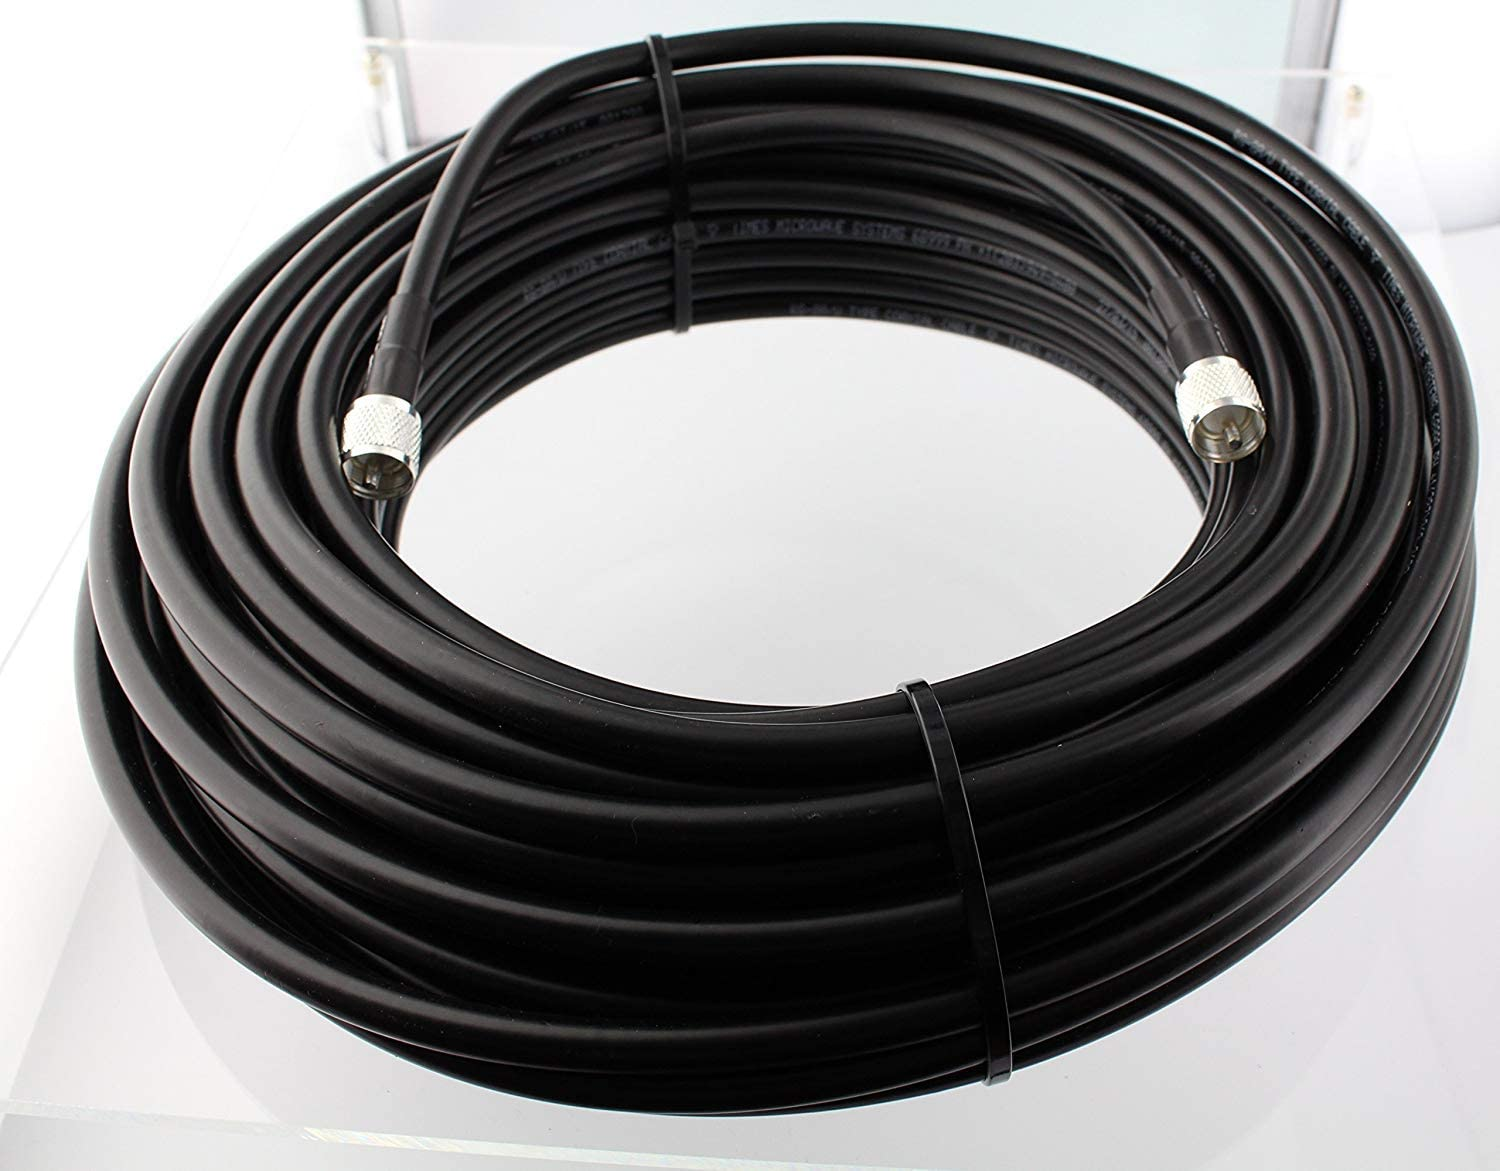 MPD Digital RG-213-PL-259-Jumper-3ft Patch Cable of RG-213//U Super Low-loss Double Shielded Coax Cable with PL-259 Connectors